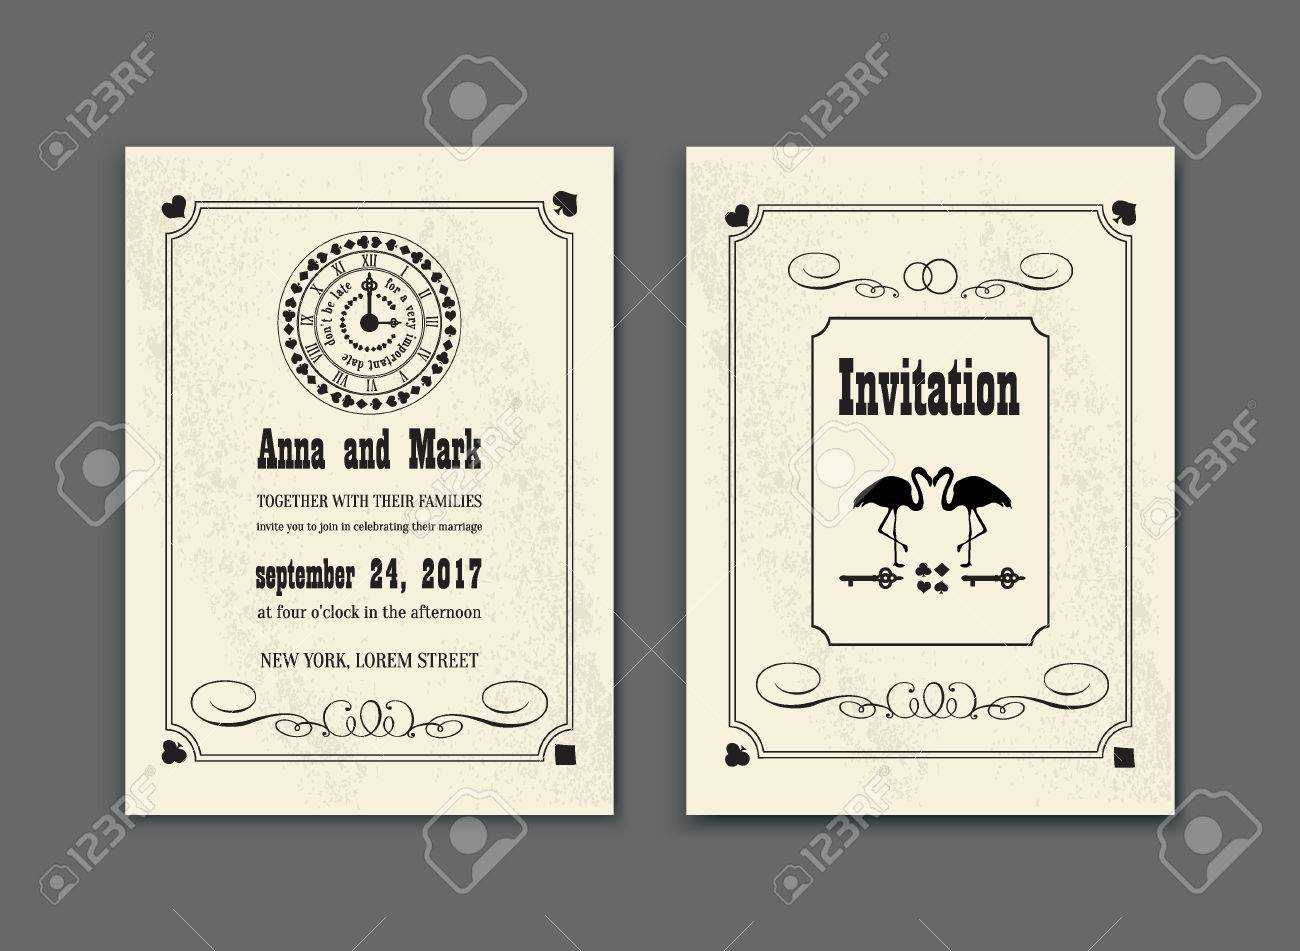 Wedding Party In Wonderland. Save The Date Invitation Alice In ...